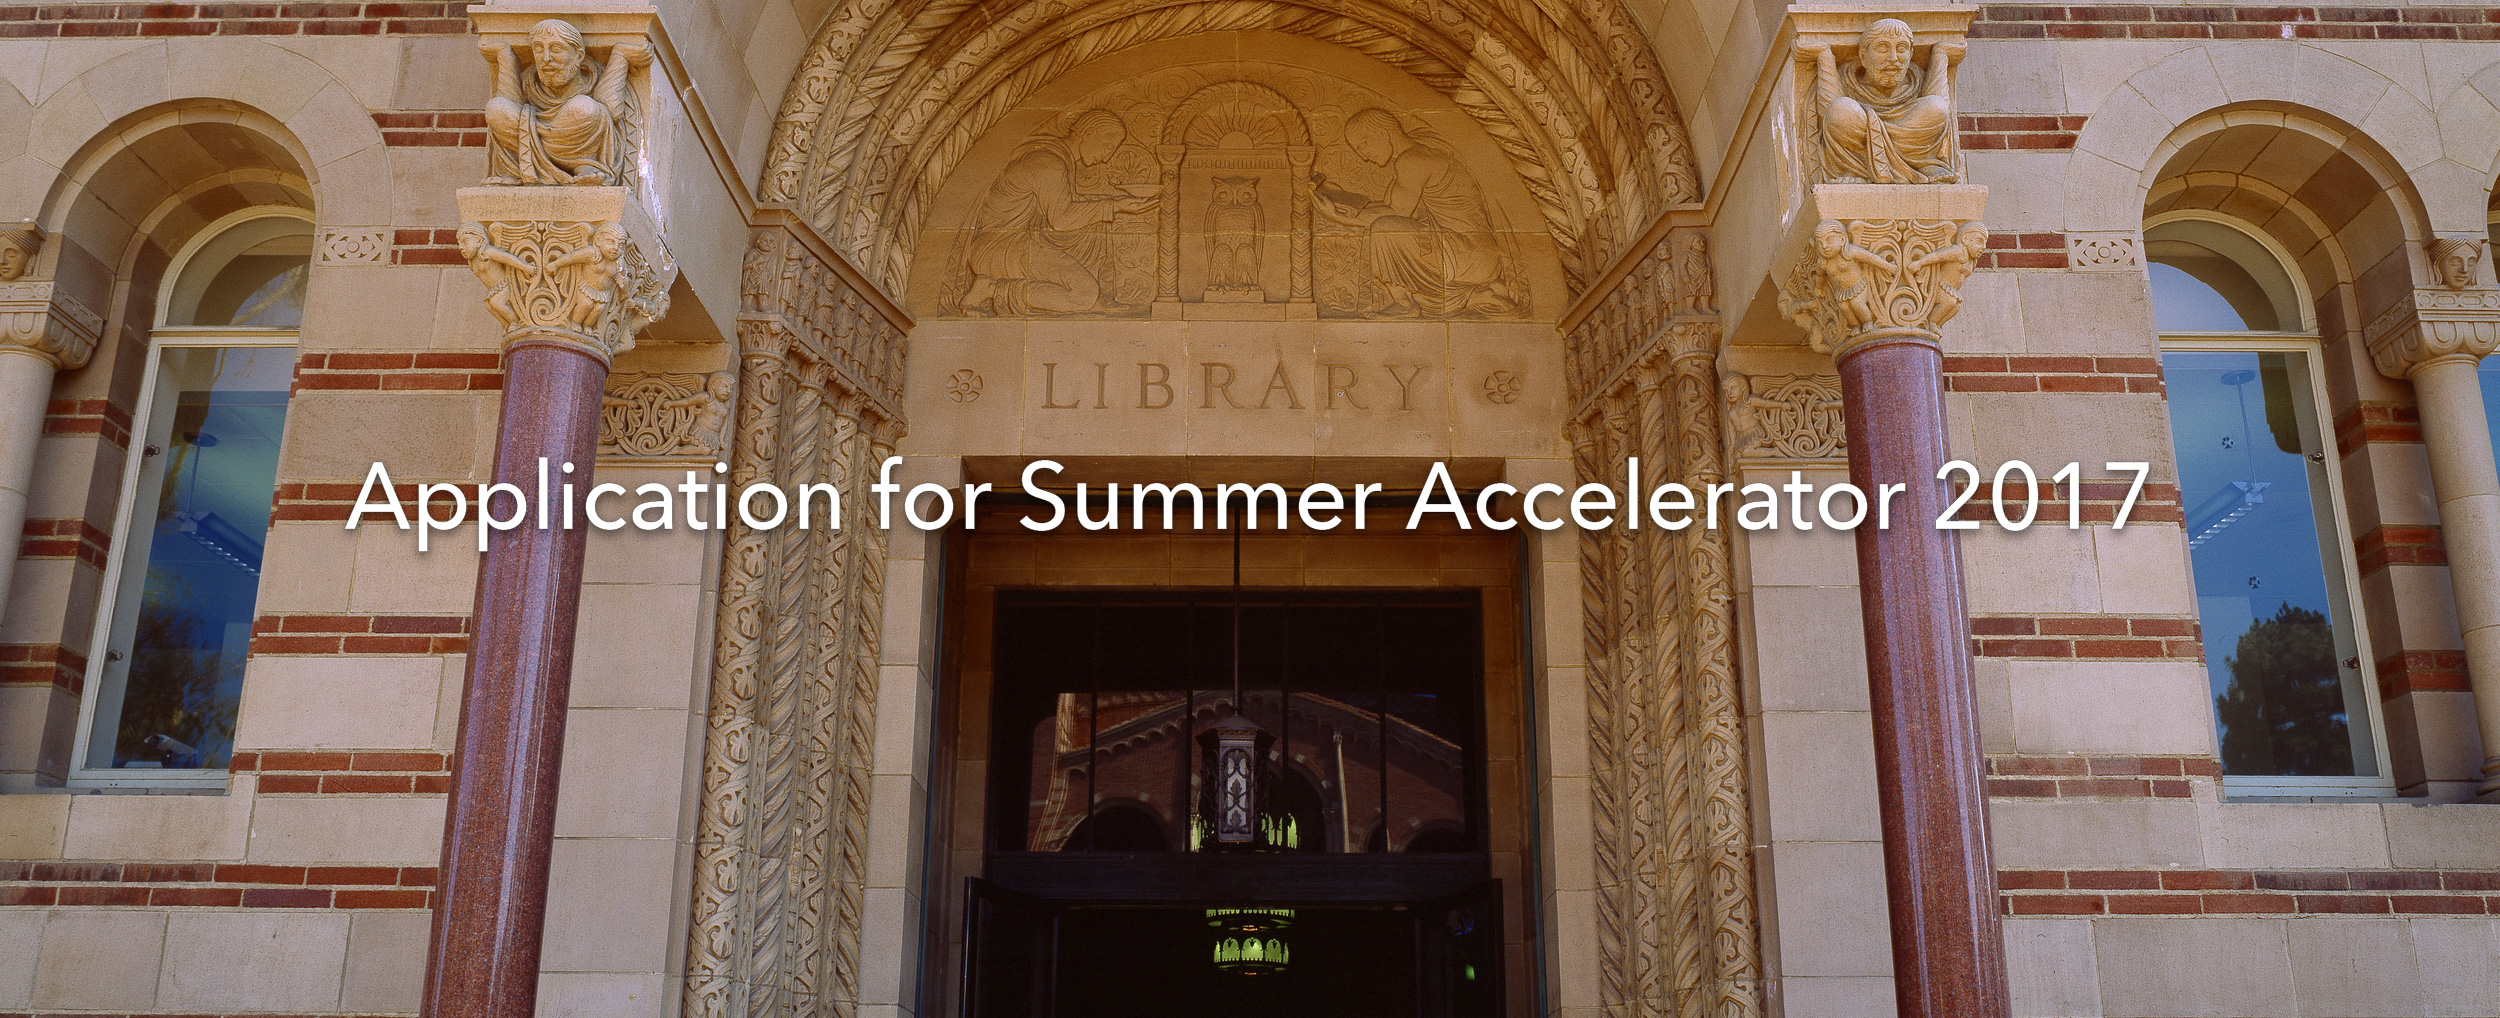 application-for-summer-accelerator-2017